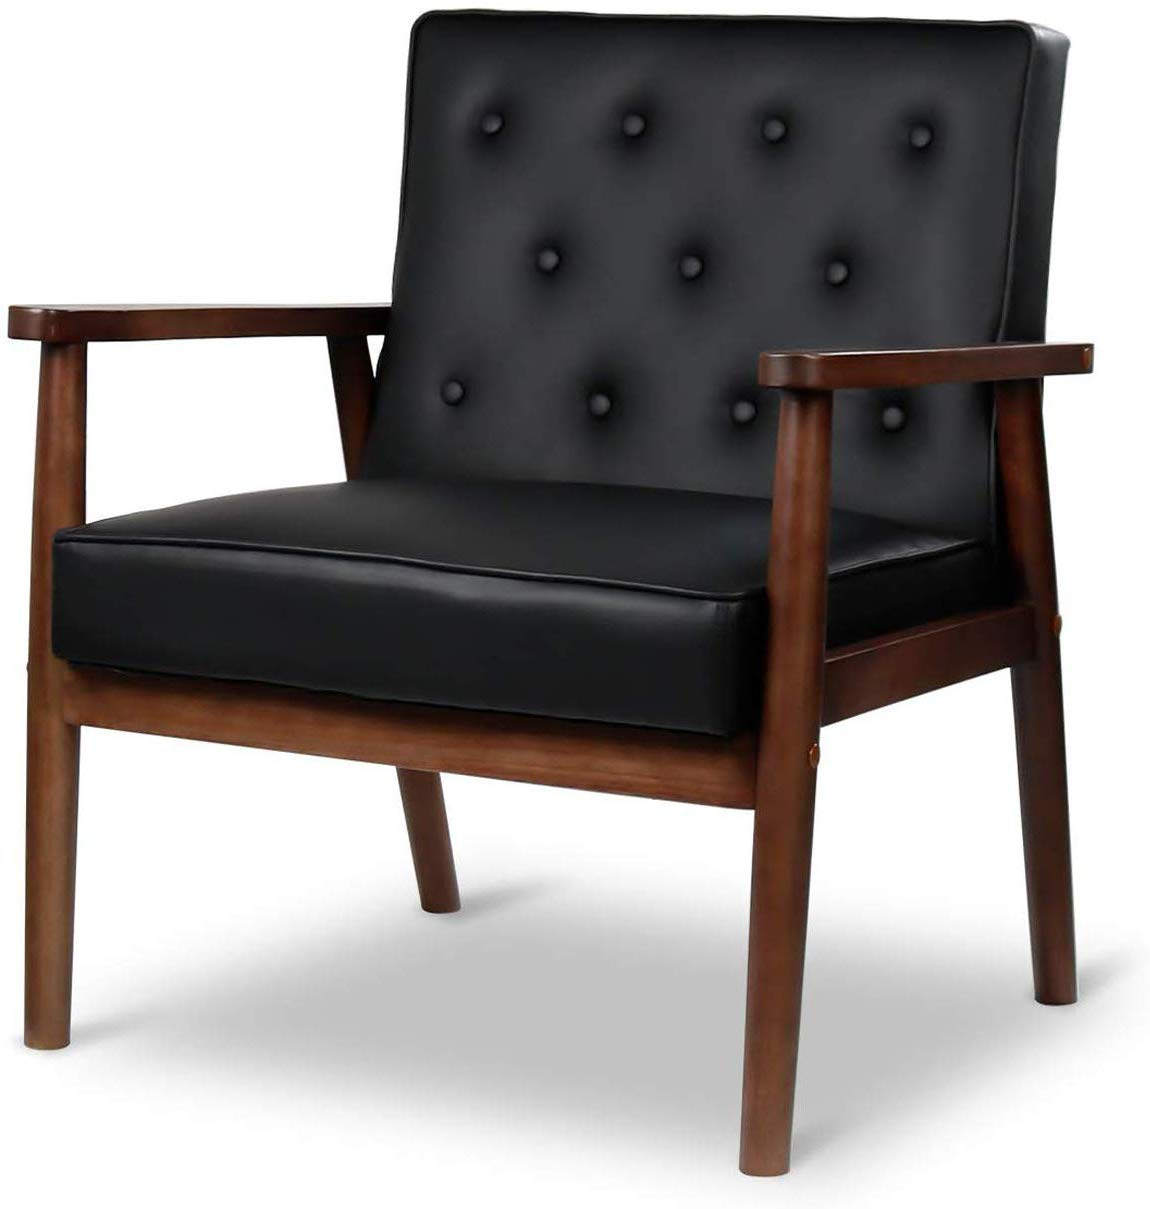 JOYBASE Mid-Century Retro Modern Accent Chair